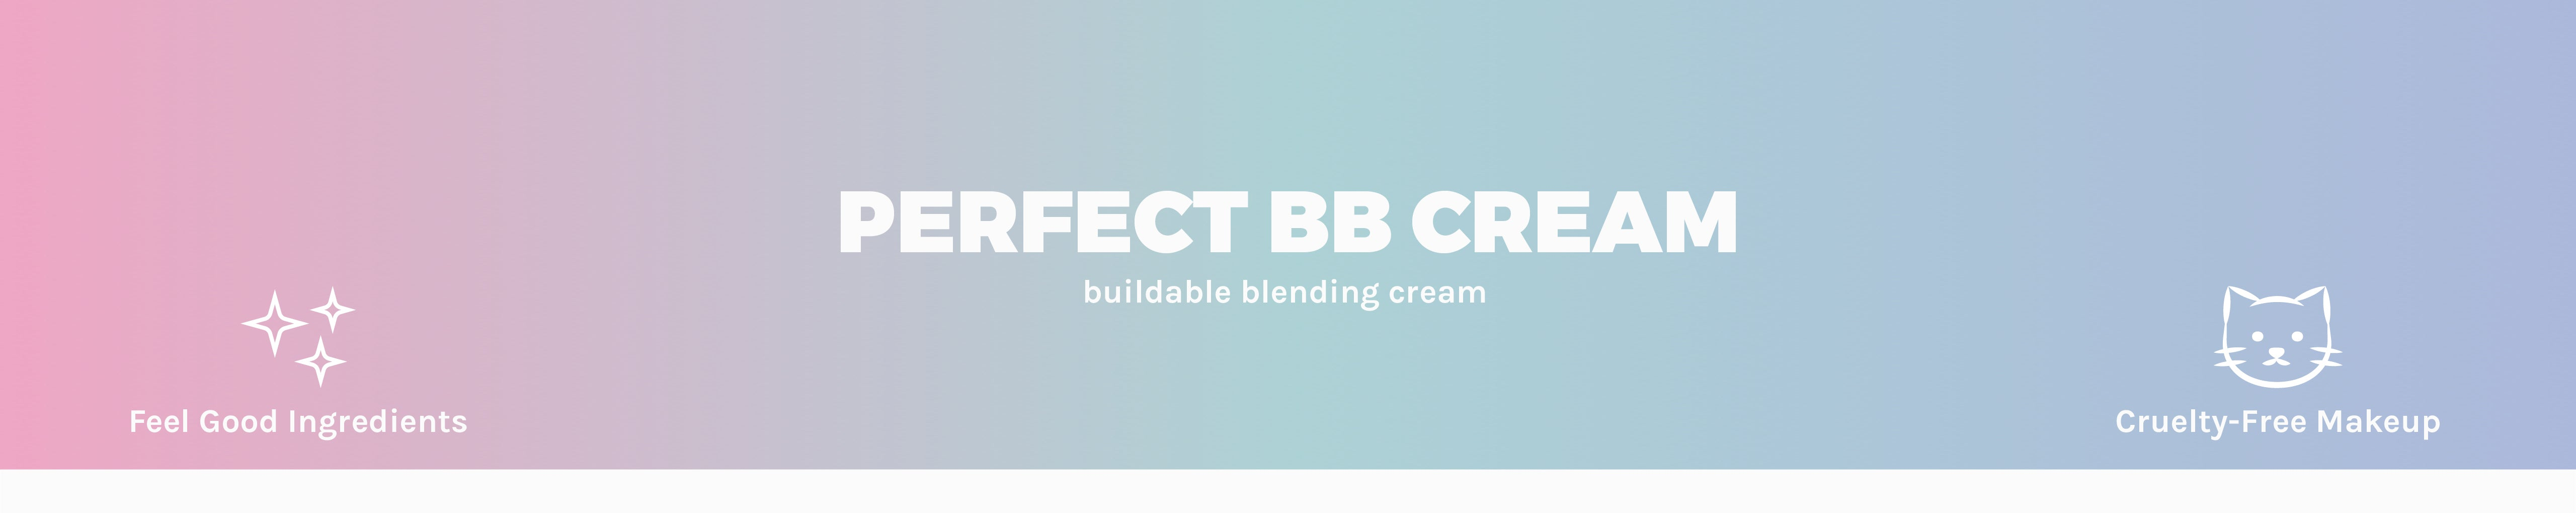 AOA Perfect BB Cream